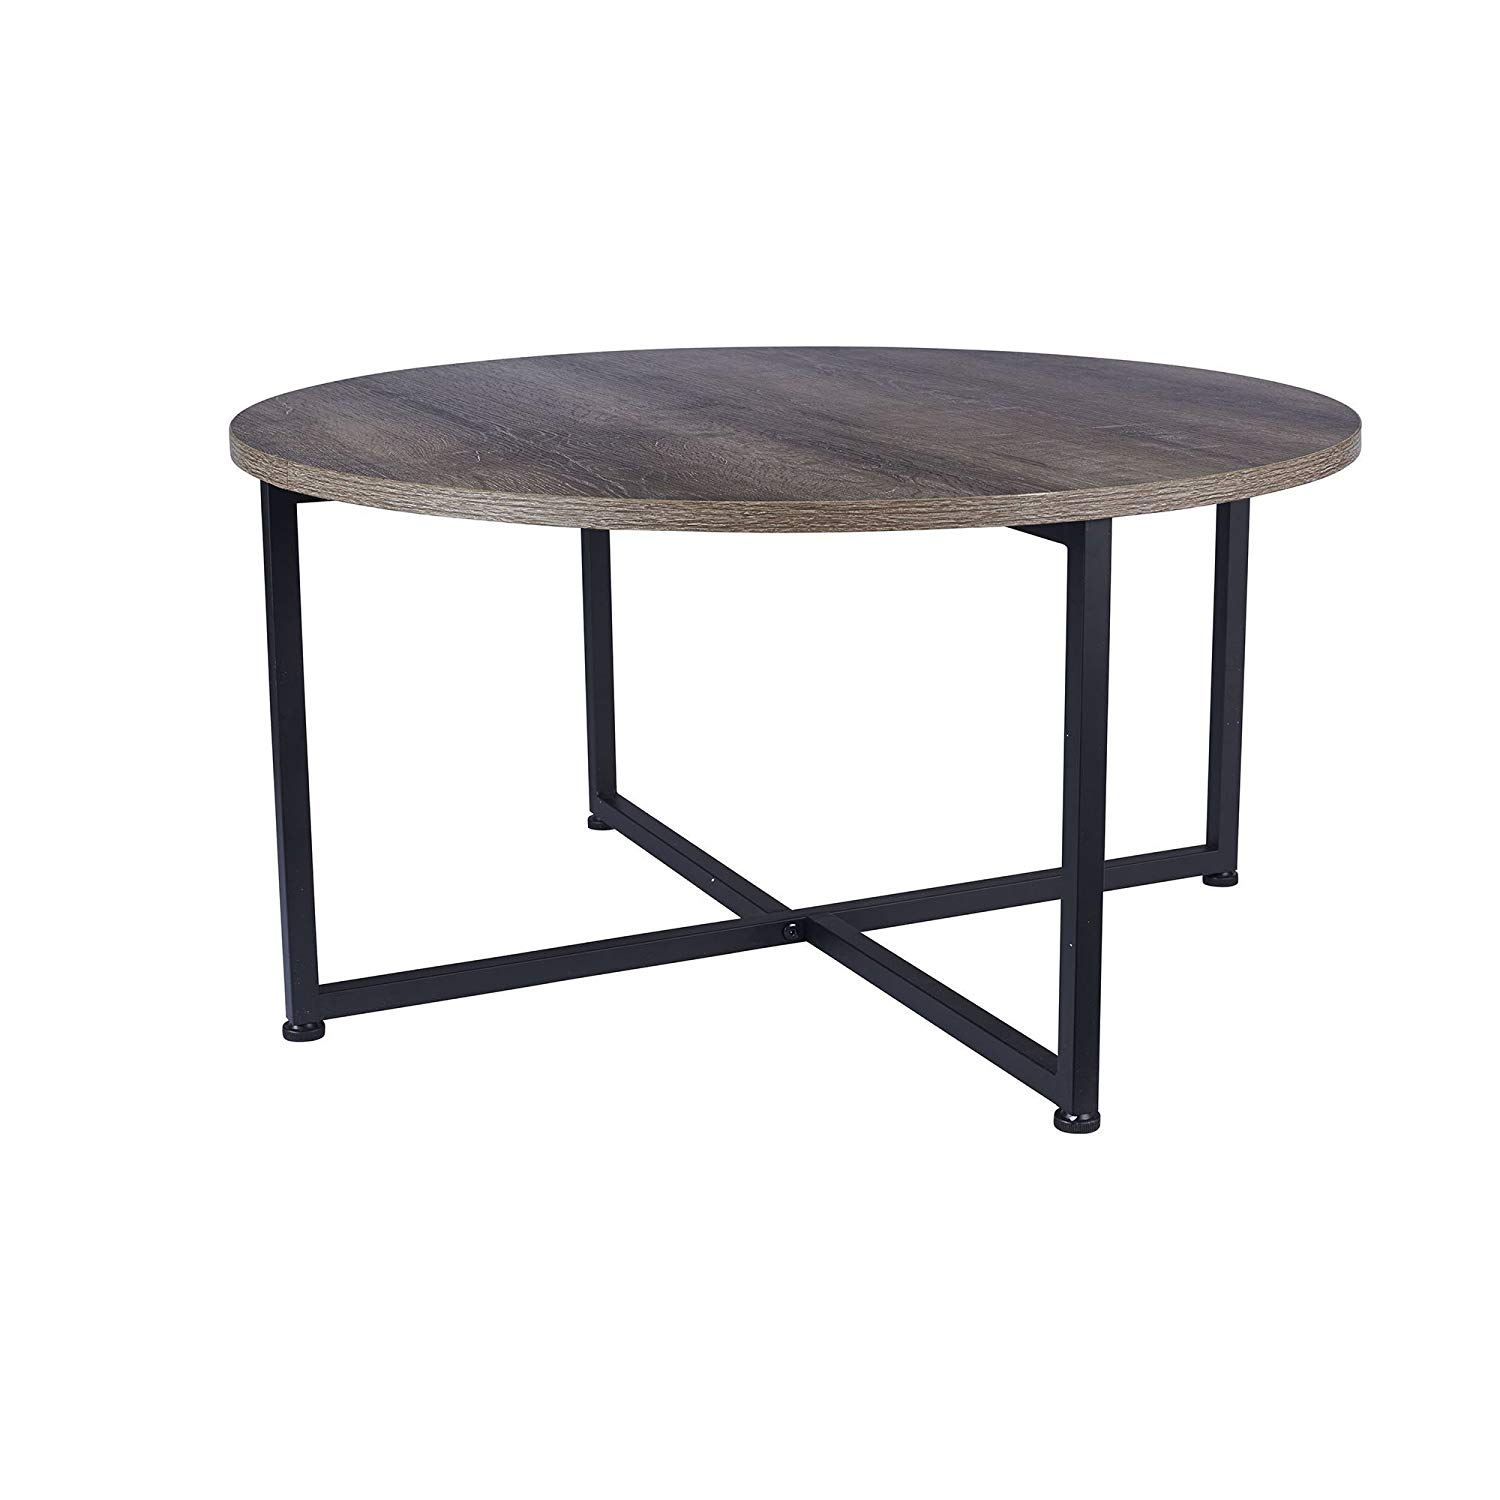 household essentials ashwood round coffee table room metal patio accent distressed gray brown black frame kitchen dining ashley furniture tables high top pub set rechargeable